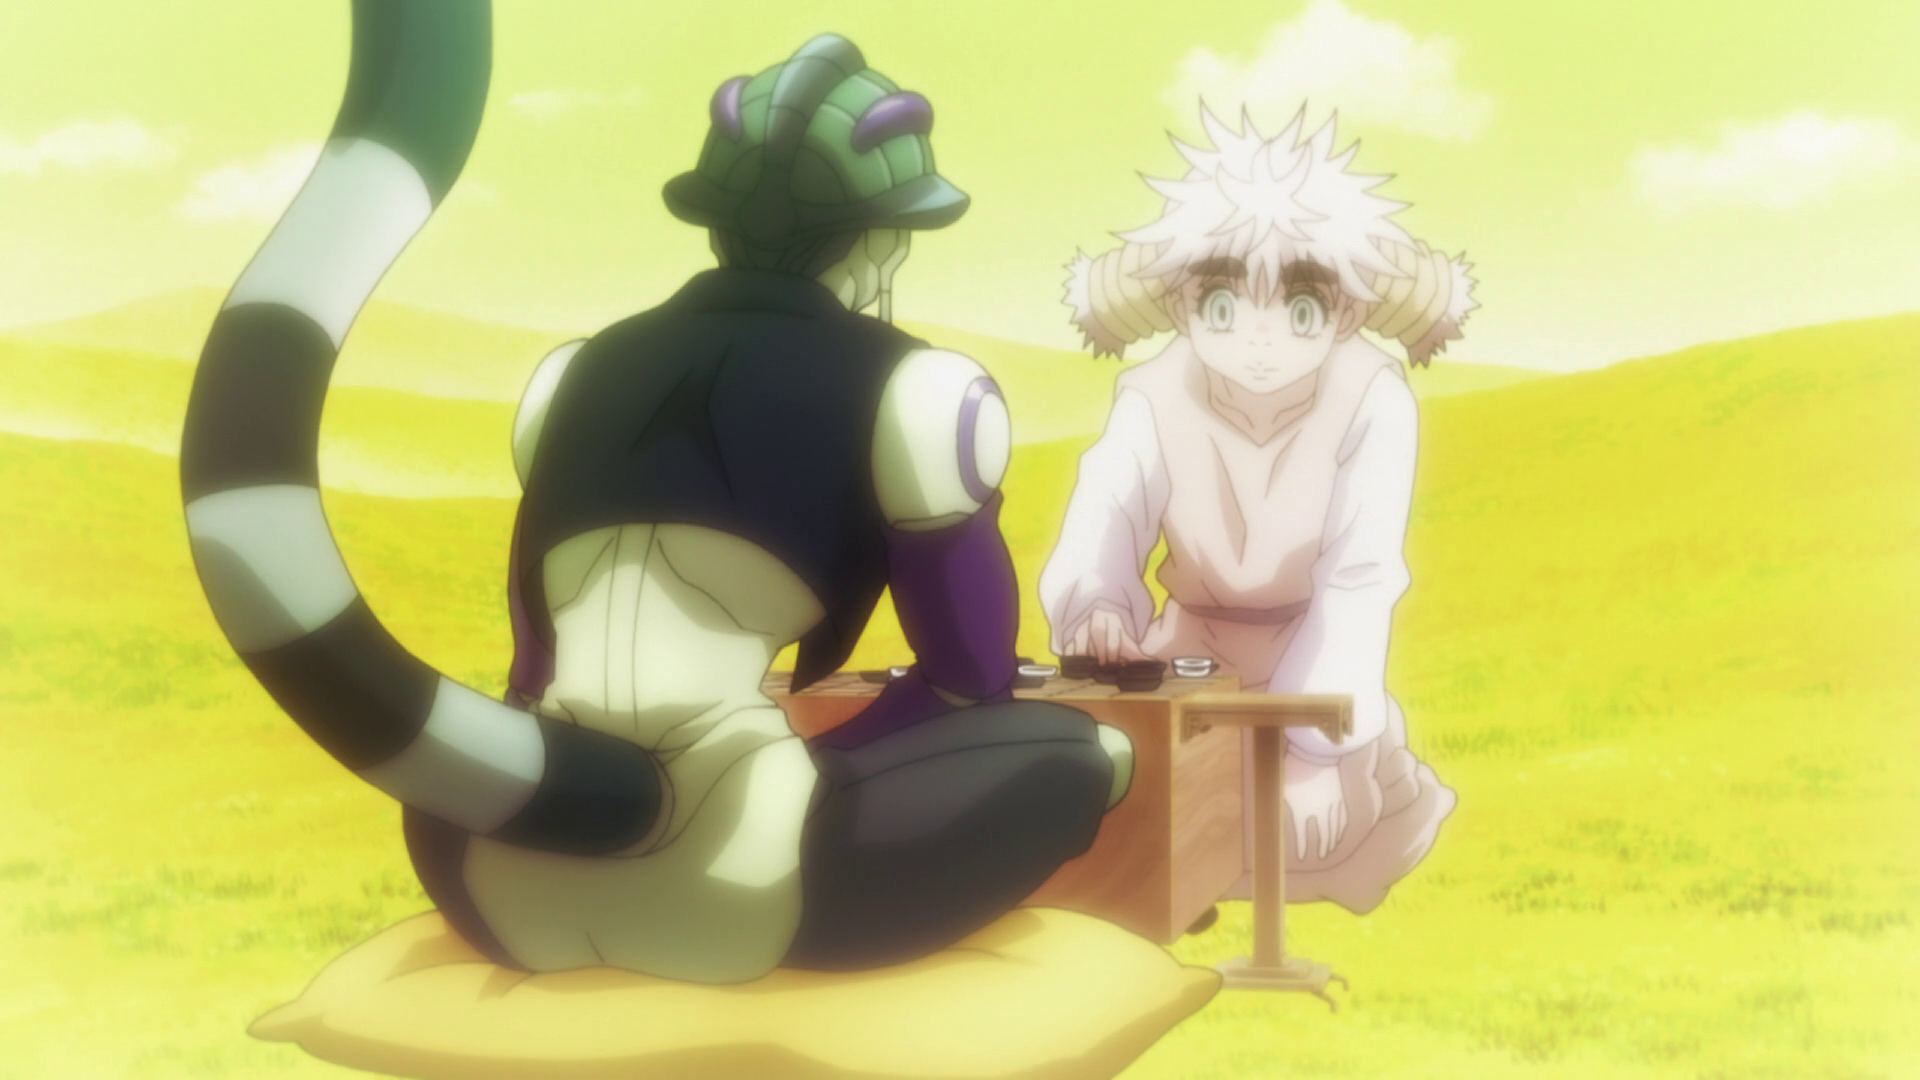 Meruem And Komugi Komugi Wallpaper 39904202 Fanpop Meruem and komugi anime moments from hunter x hunter 2011. meruem and komugi komugi wallpaper